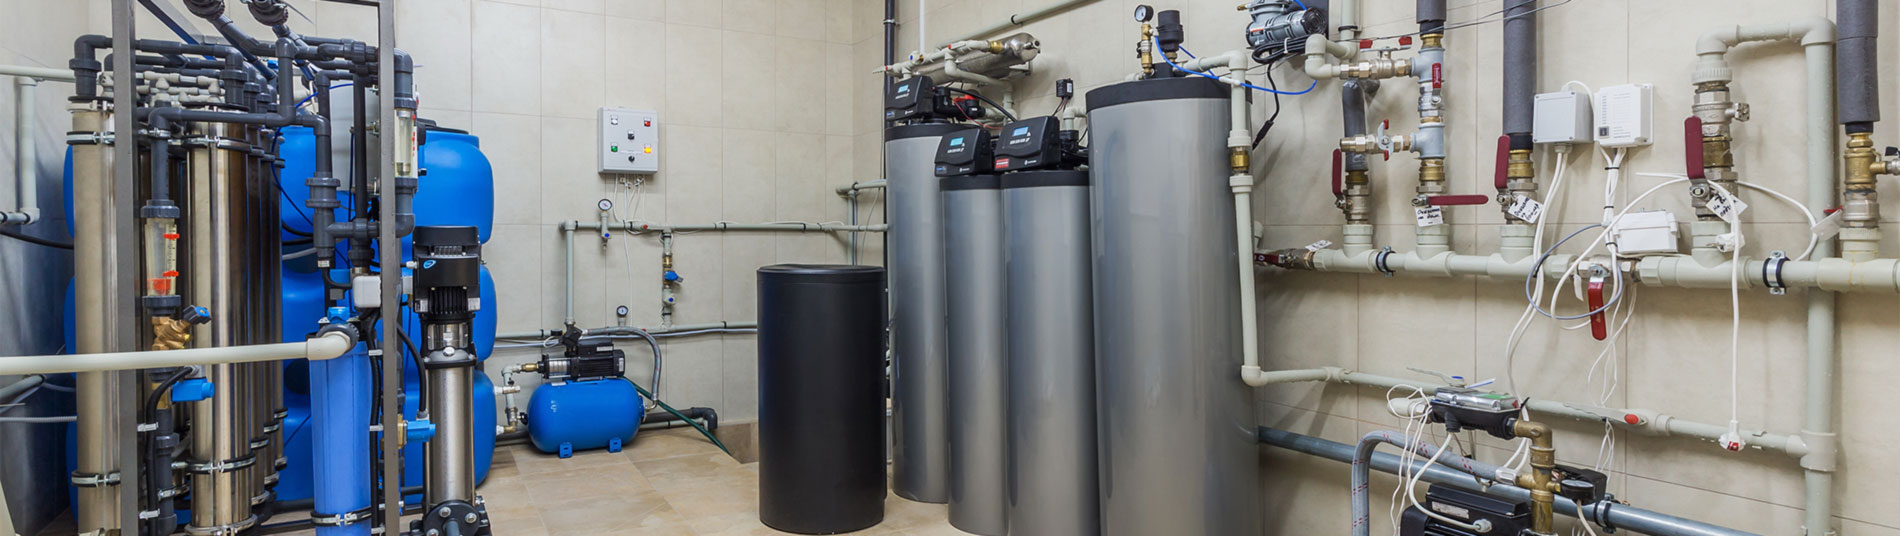 Commercial Boiler Installation & Boiler Repairs in Mesa, AZ